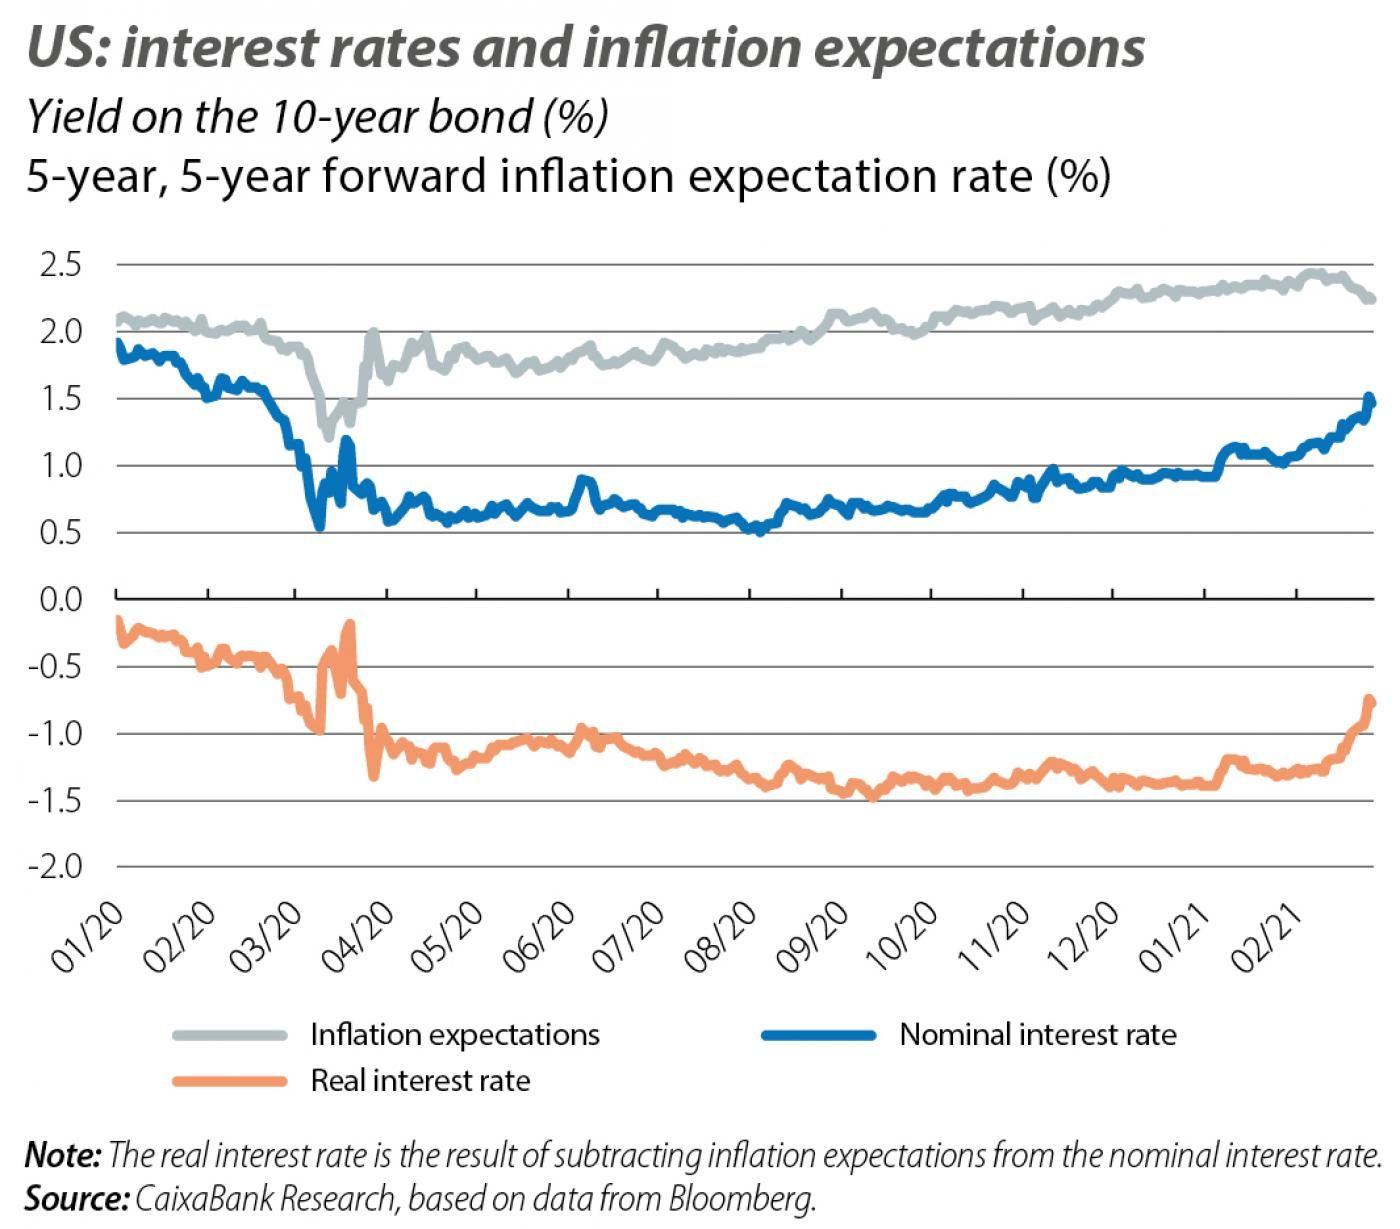 US: interest rates and inflation expectations